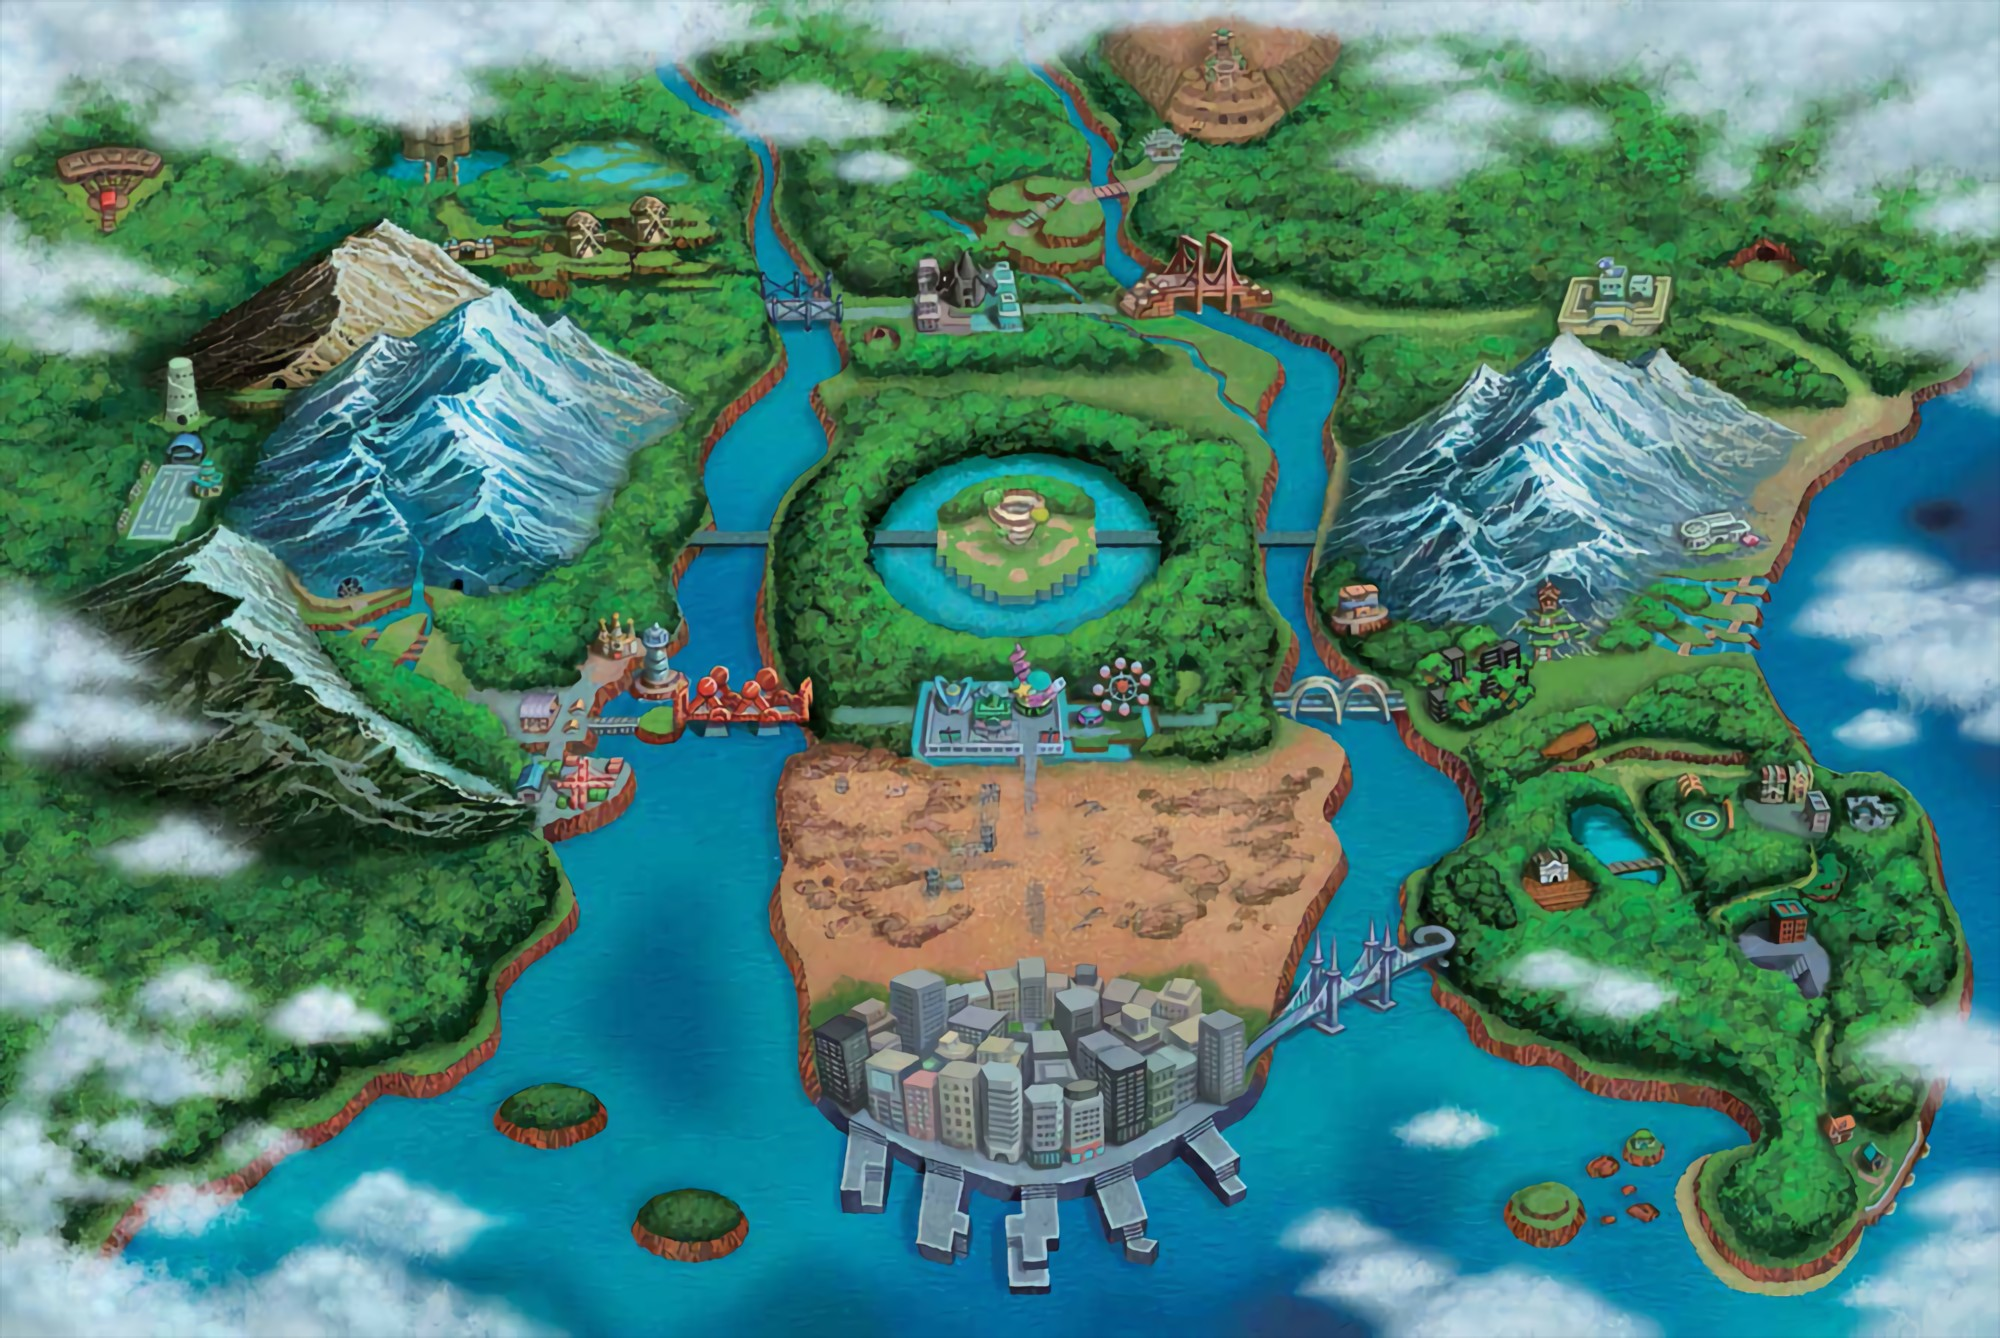 Hexagons are everywhere in Unova